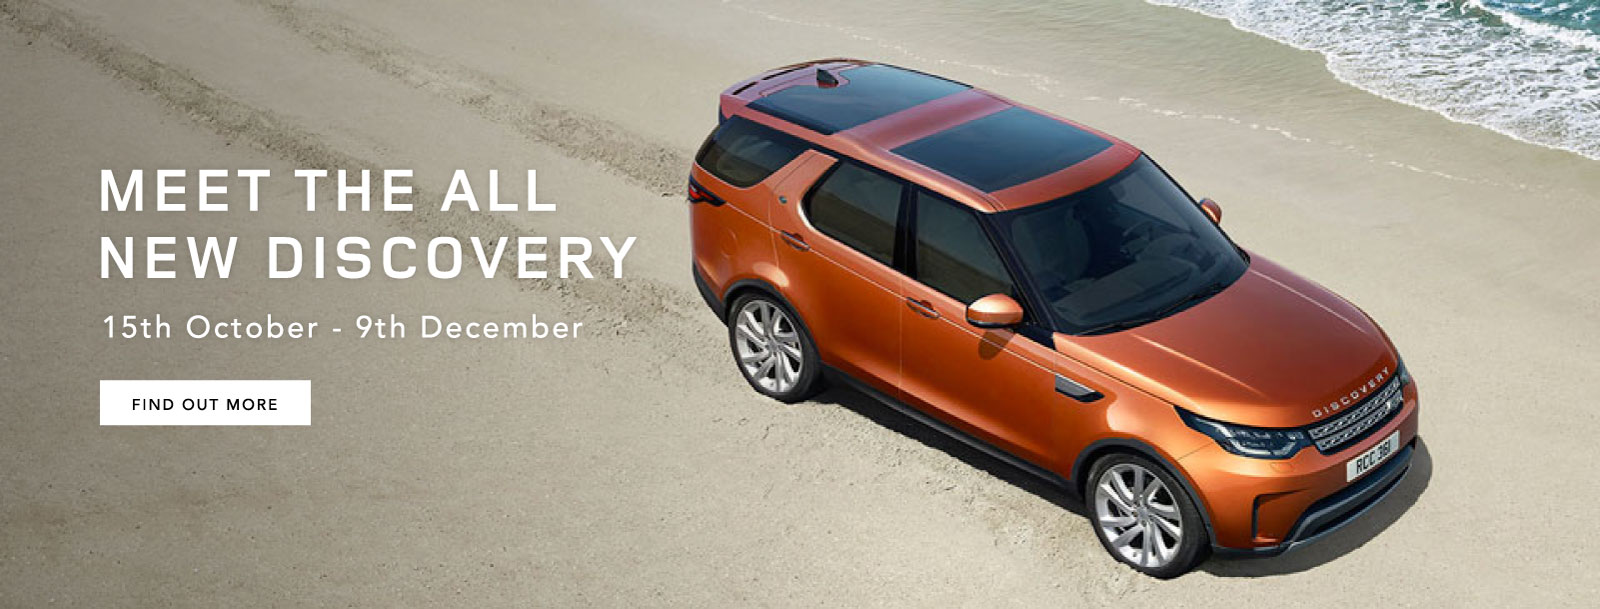 Meet the All New Discovery